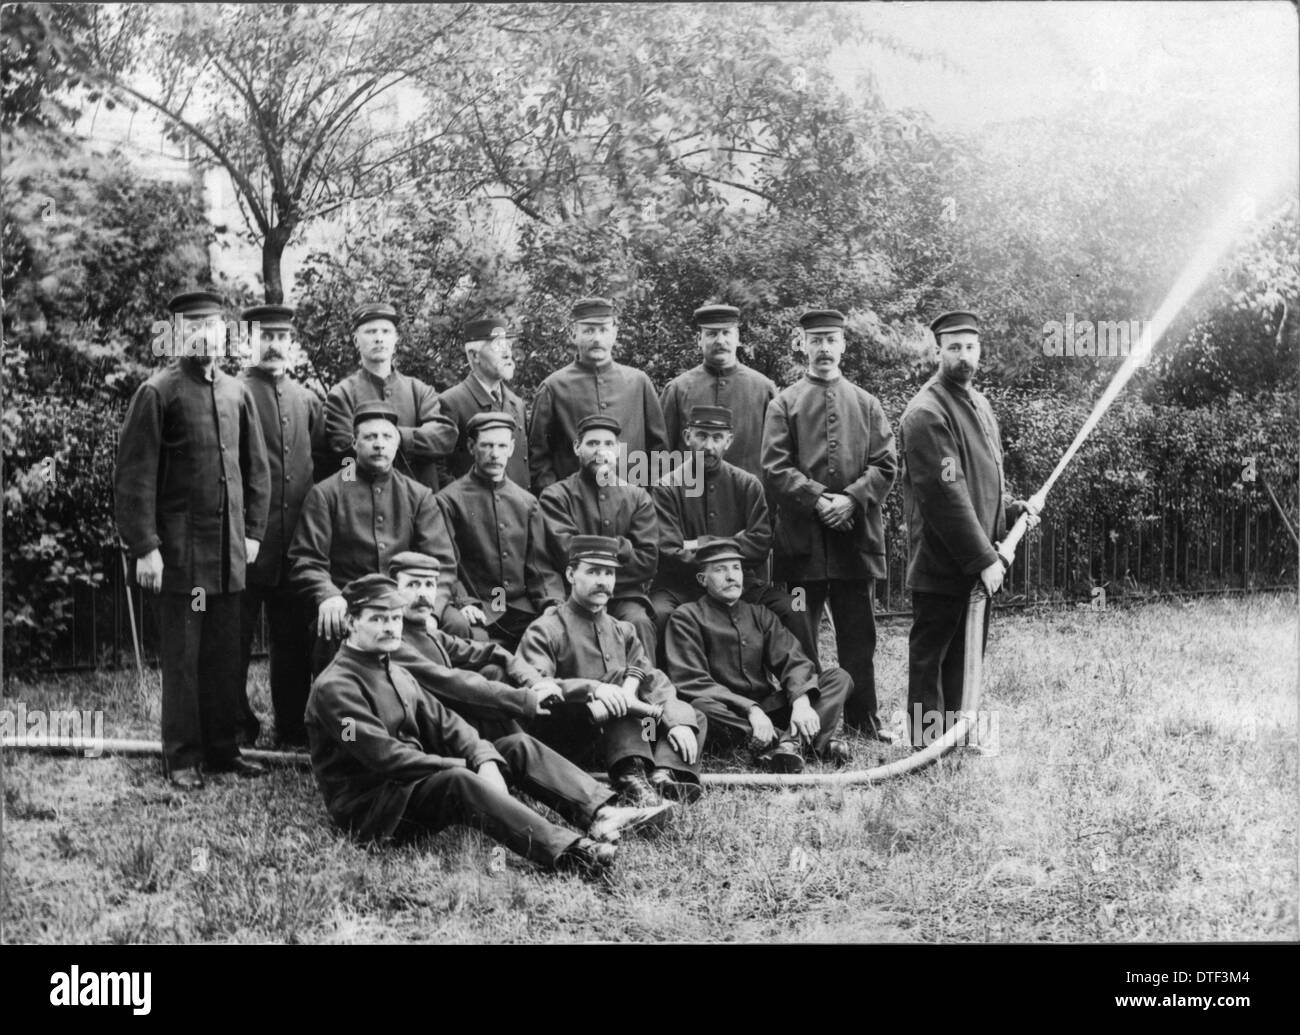 Firemen, c.1910 at the Natural History Museum - Stock Image